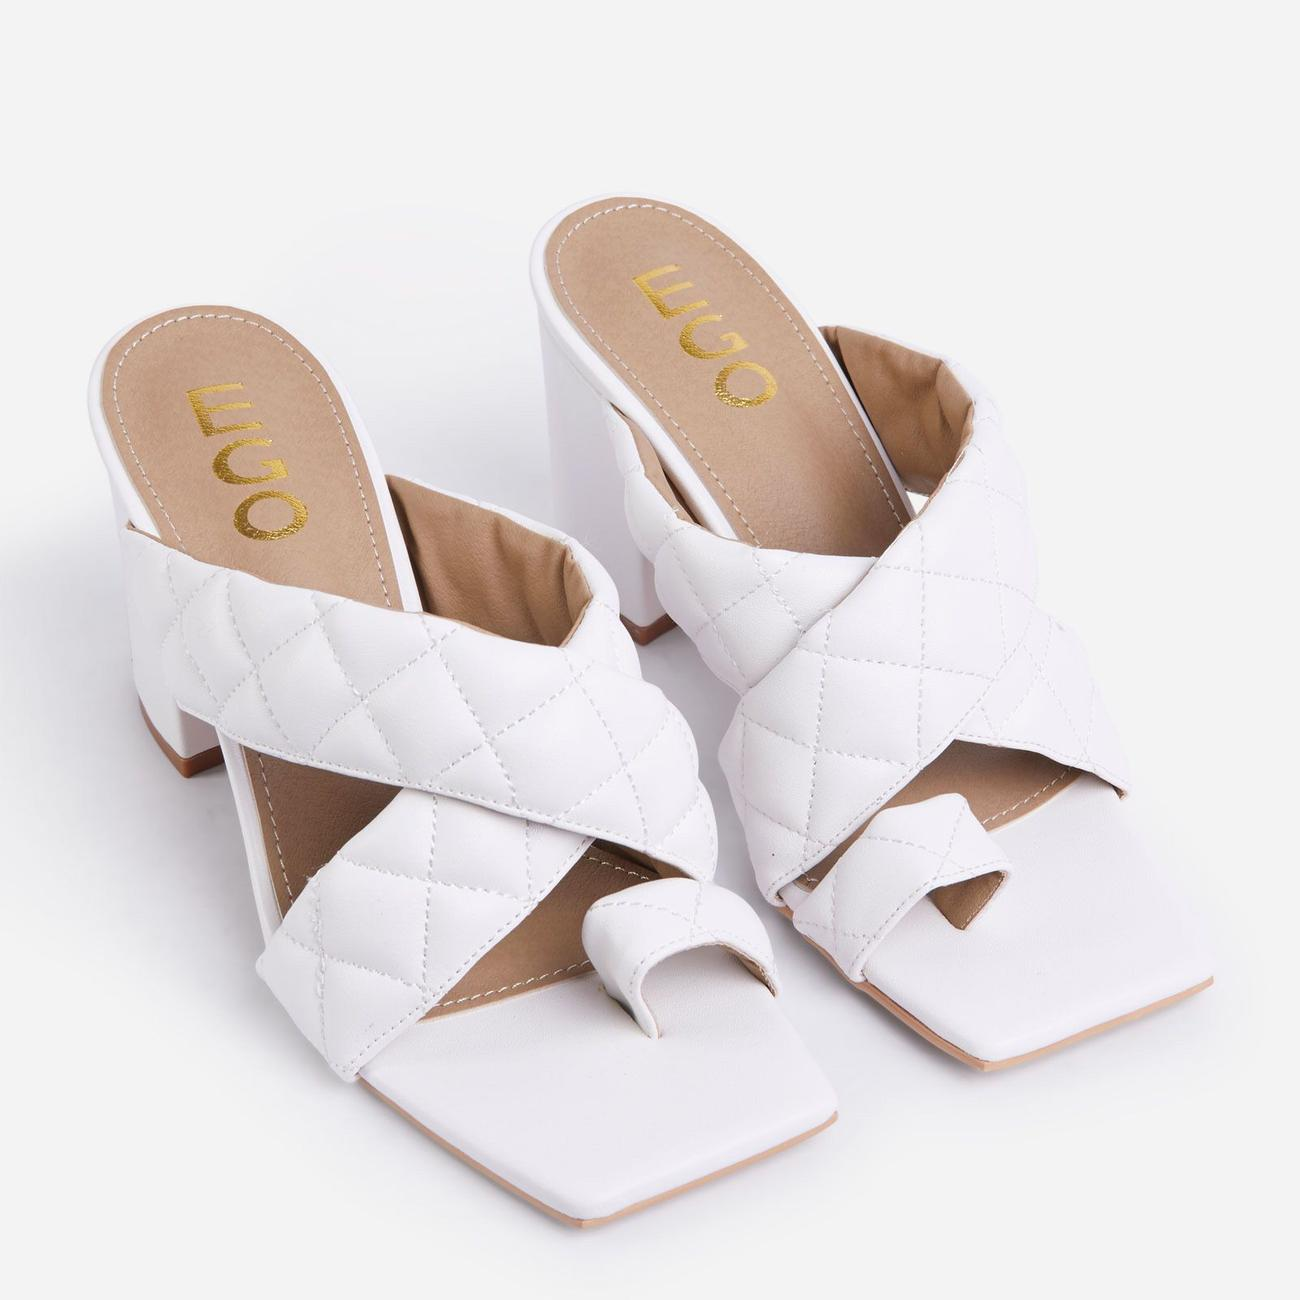 Sugar High Quilted Crossover Square Peep Toe Midi Block Heel Mule In White Faux Leather Image 2